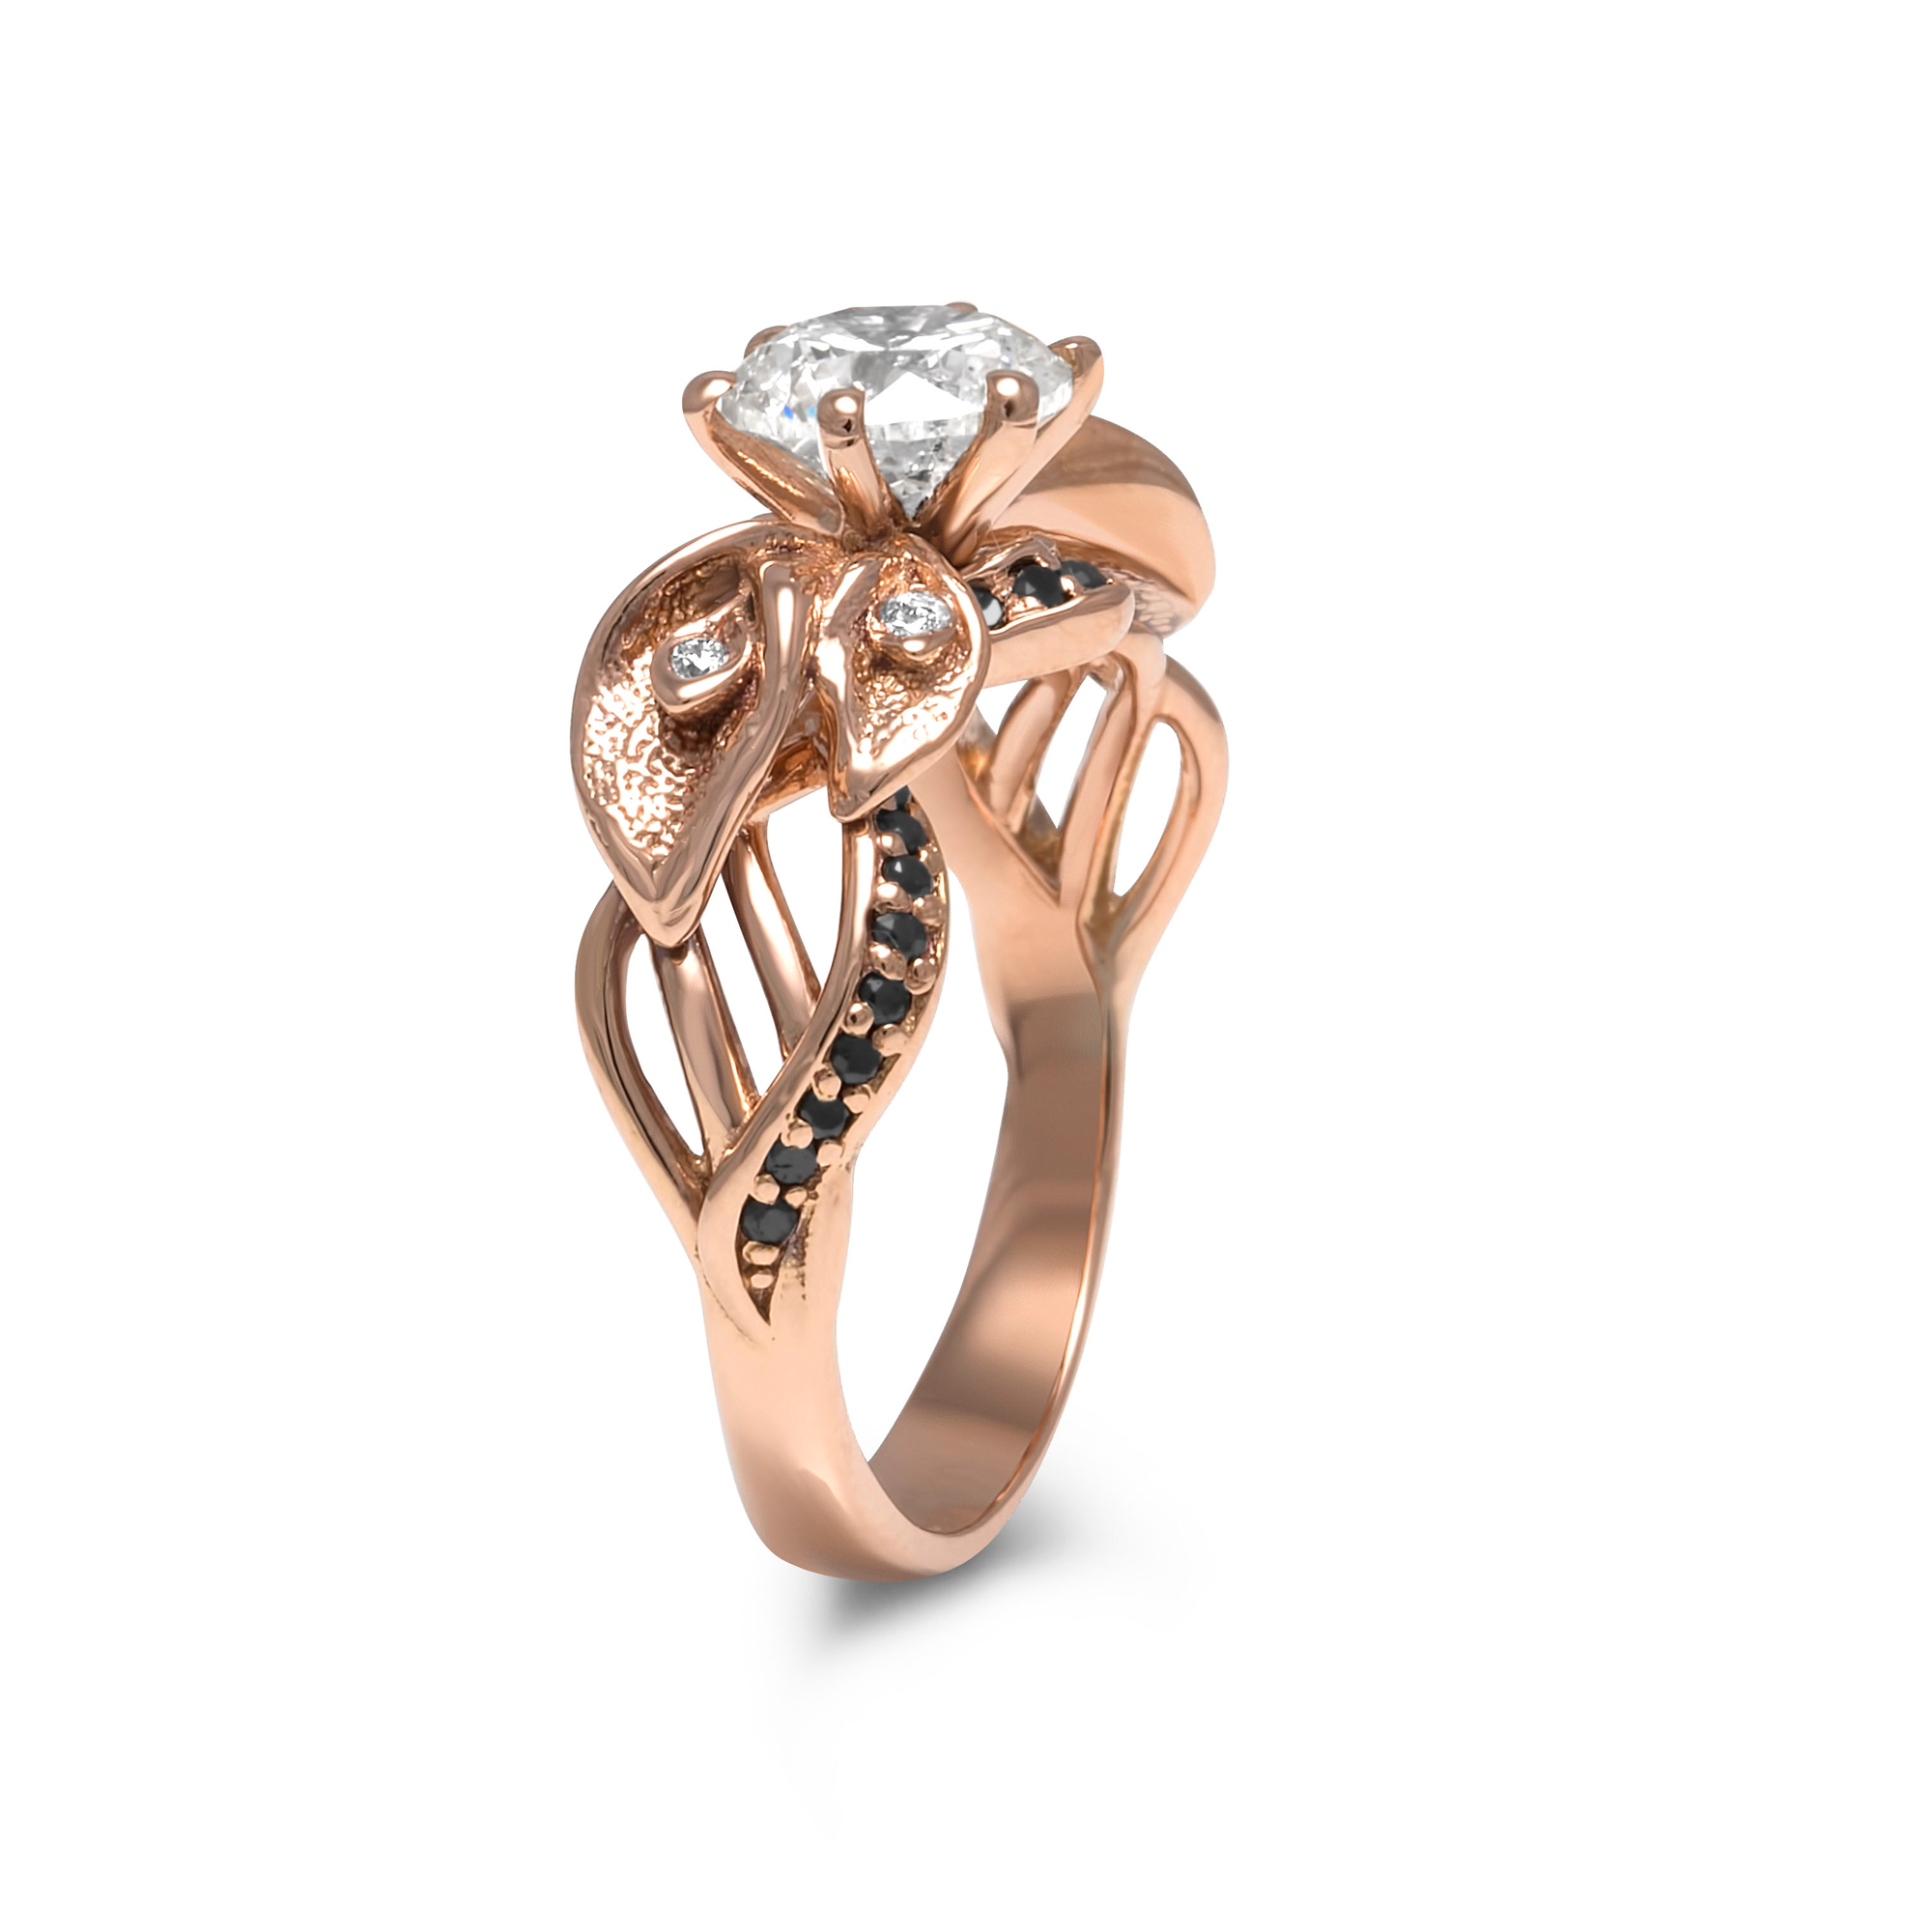 Calla Lily Flower Moissanite Engagement Ring Rose Gold With Black Diamonds Ring Unique Moissanite Engagement Ring